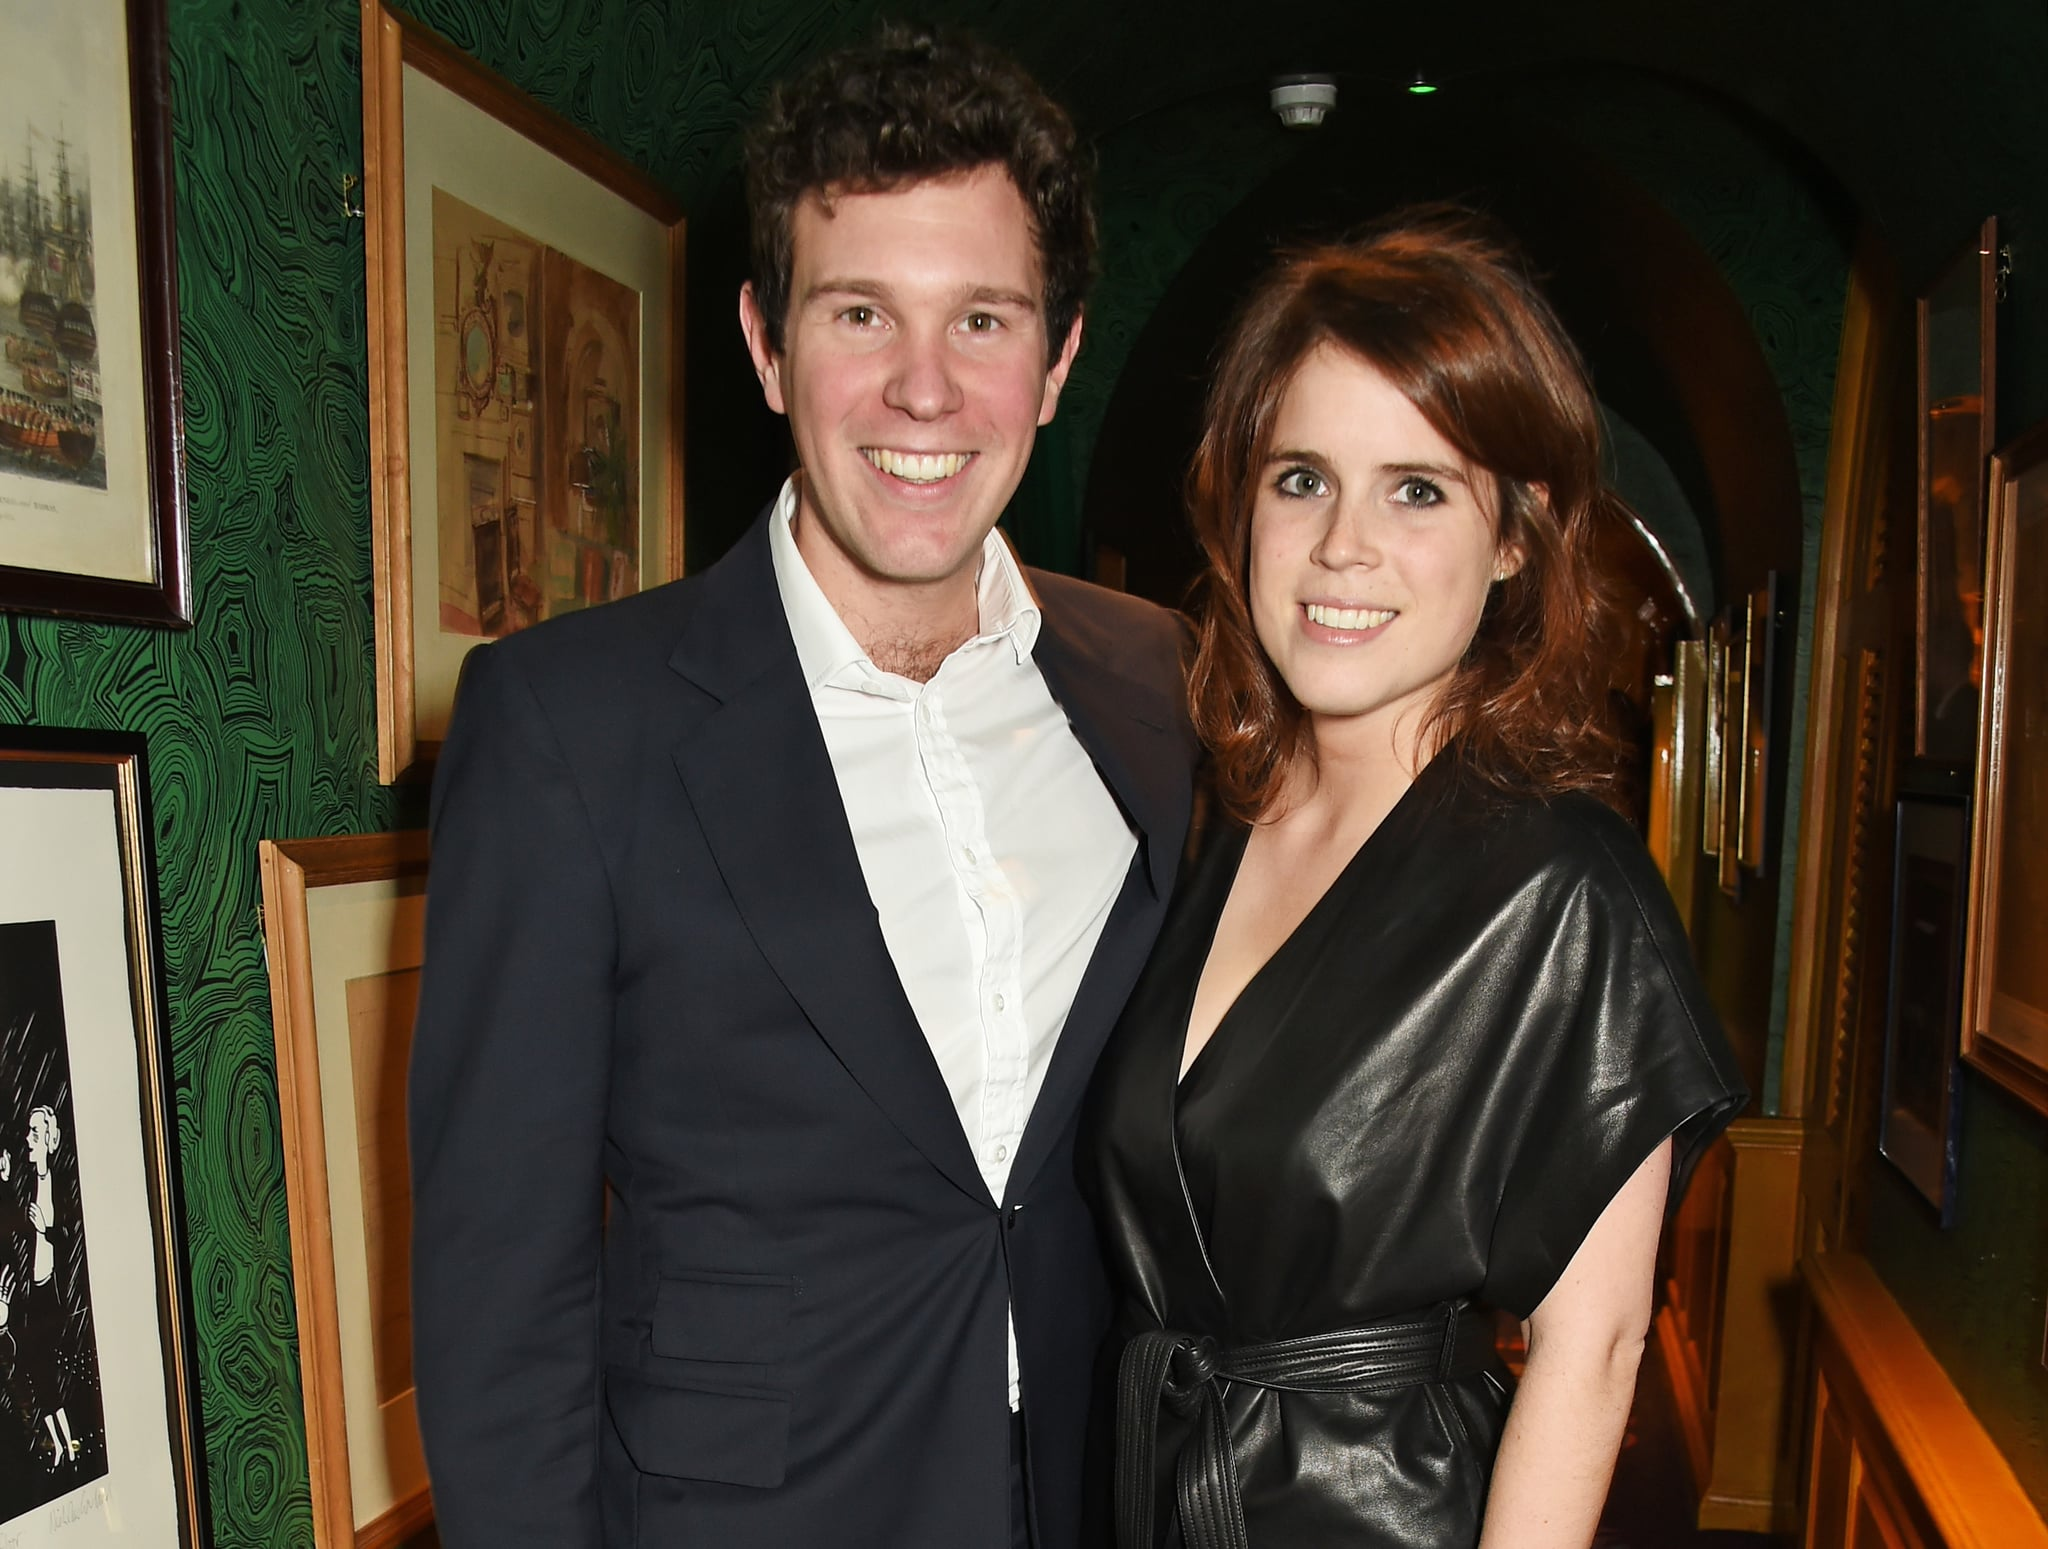 LONDON, ENGLAND - JANUARY 26:  Princess Eugenie of York (R) and Jack Brooksbank attend the launch of GP Nutrition Supplements, a collection of five premium nutritional programmes perfect for modern living, at Annabels on January 26, 2016 in London, England.  (Photo by David M. Benett/Dave Benett/Getty Images for Gabriela Peacock)